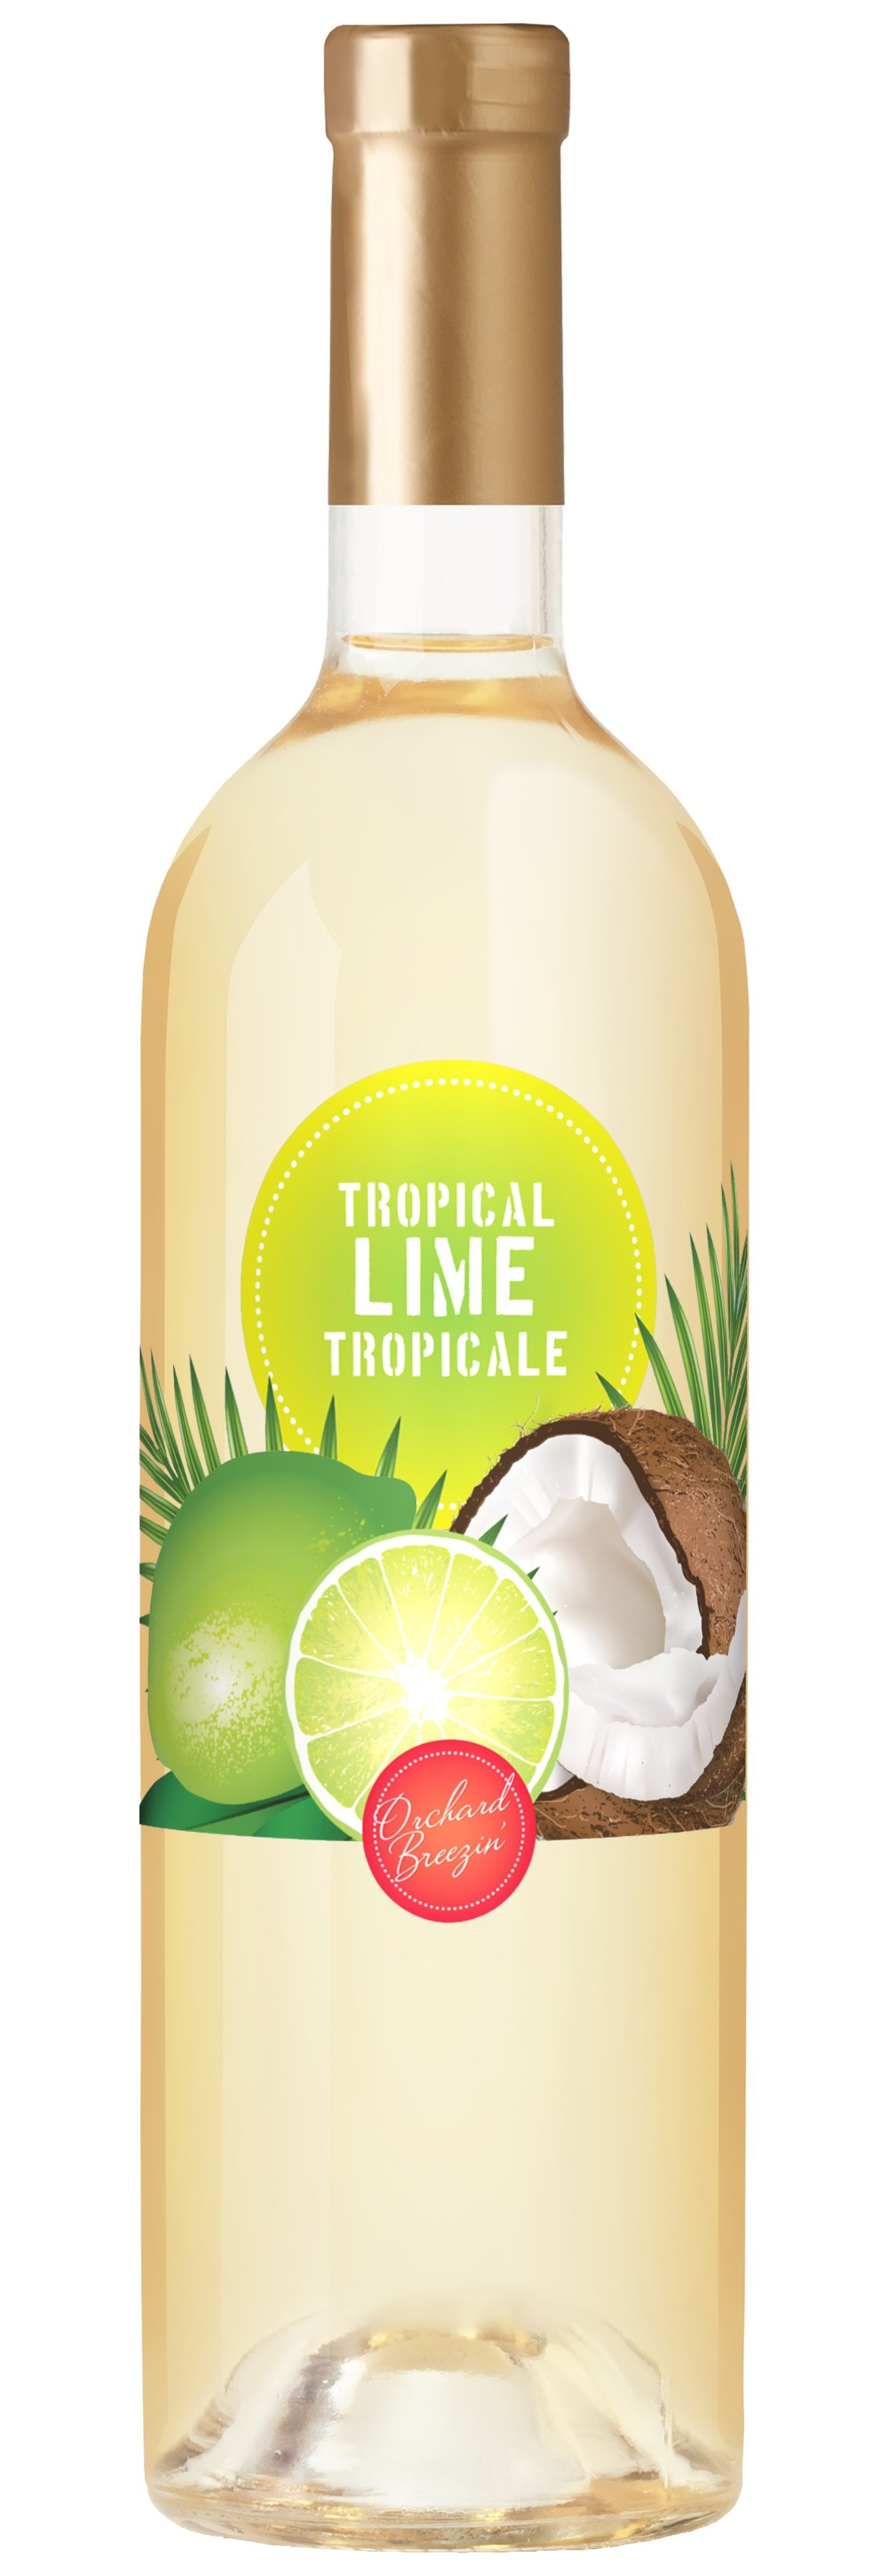 https://0901.nccdn.net/4_2/000/000/046/6ea/OB_Bottle_TropicalLime.jpg